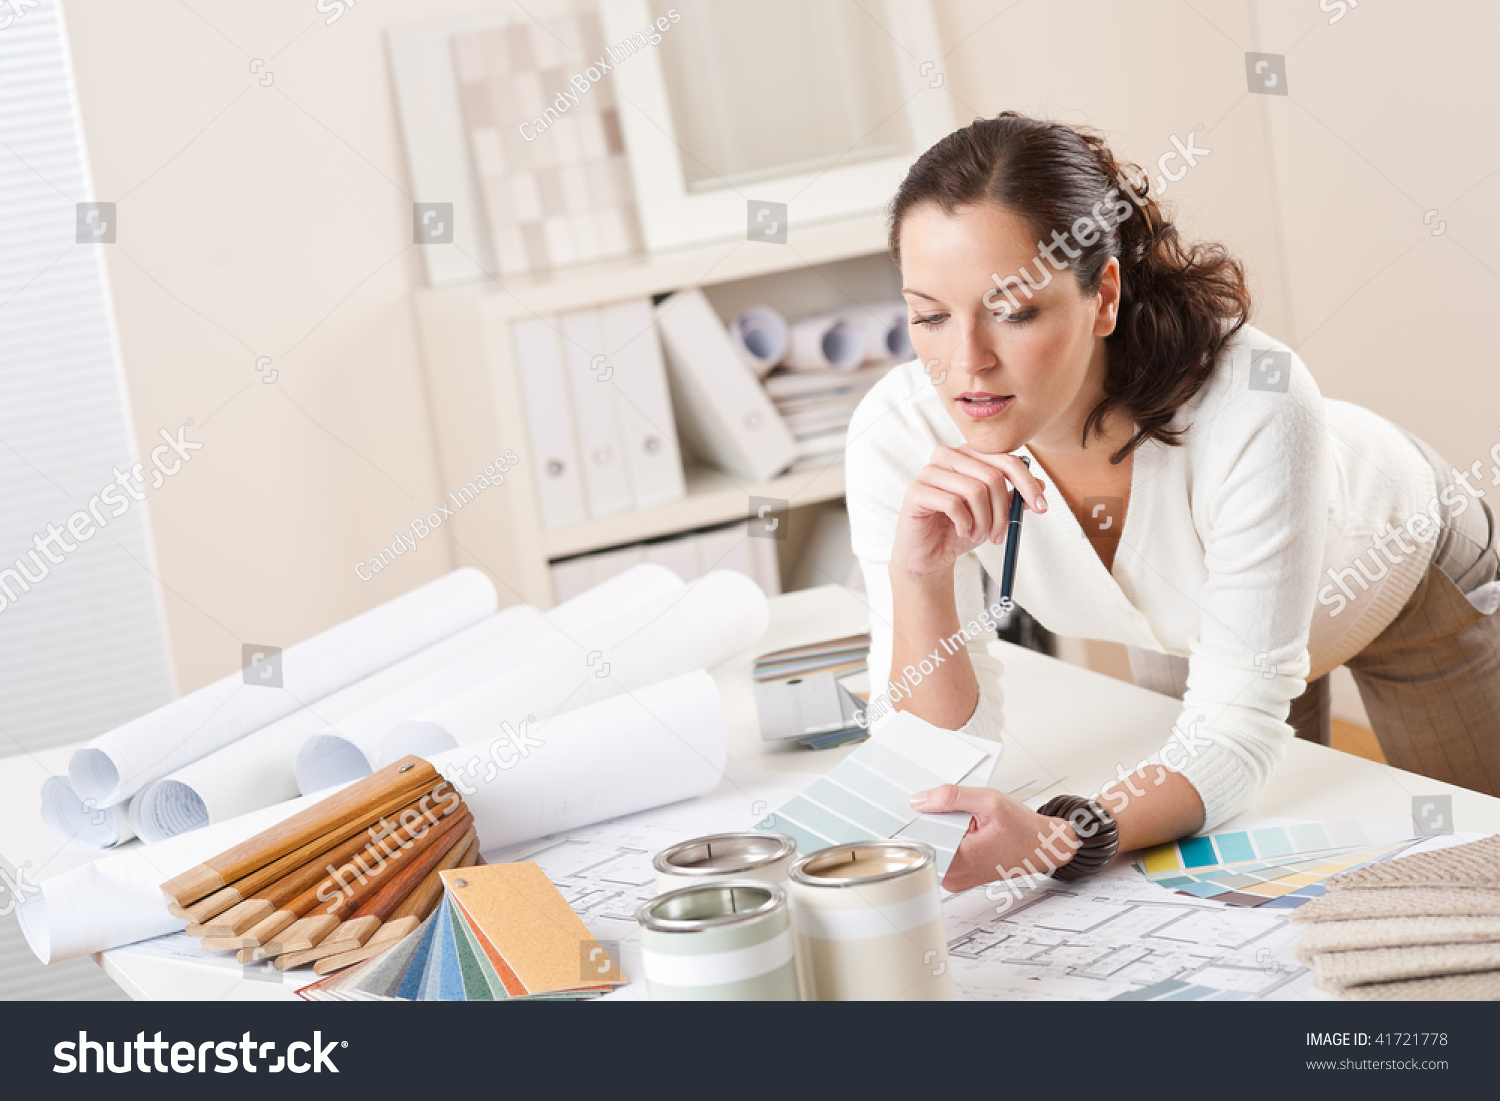 Female Interior Designer Working At Office With Color